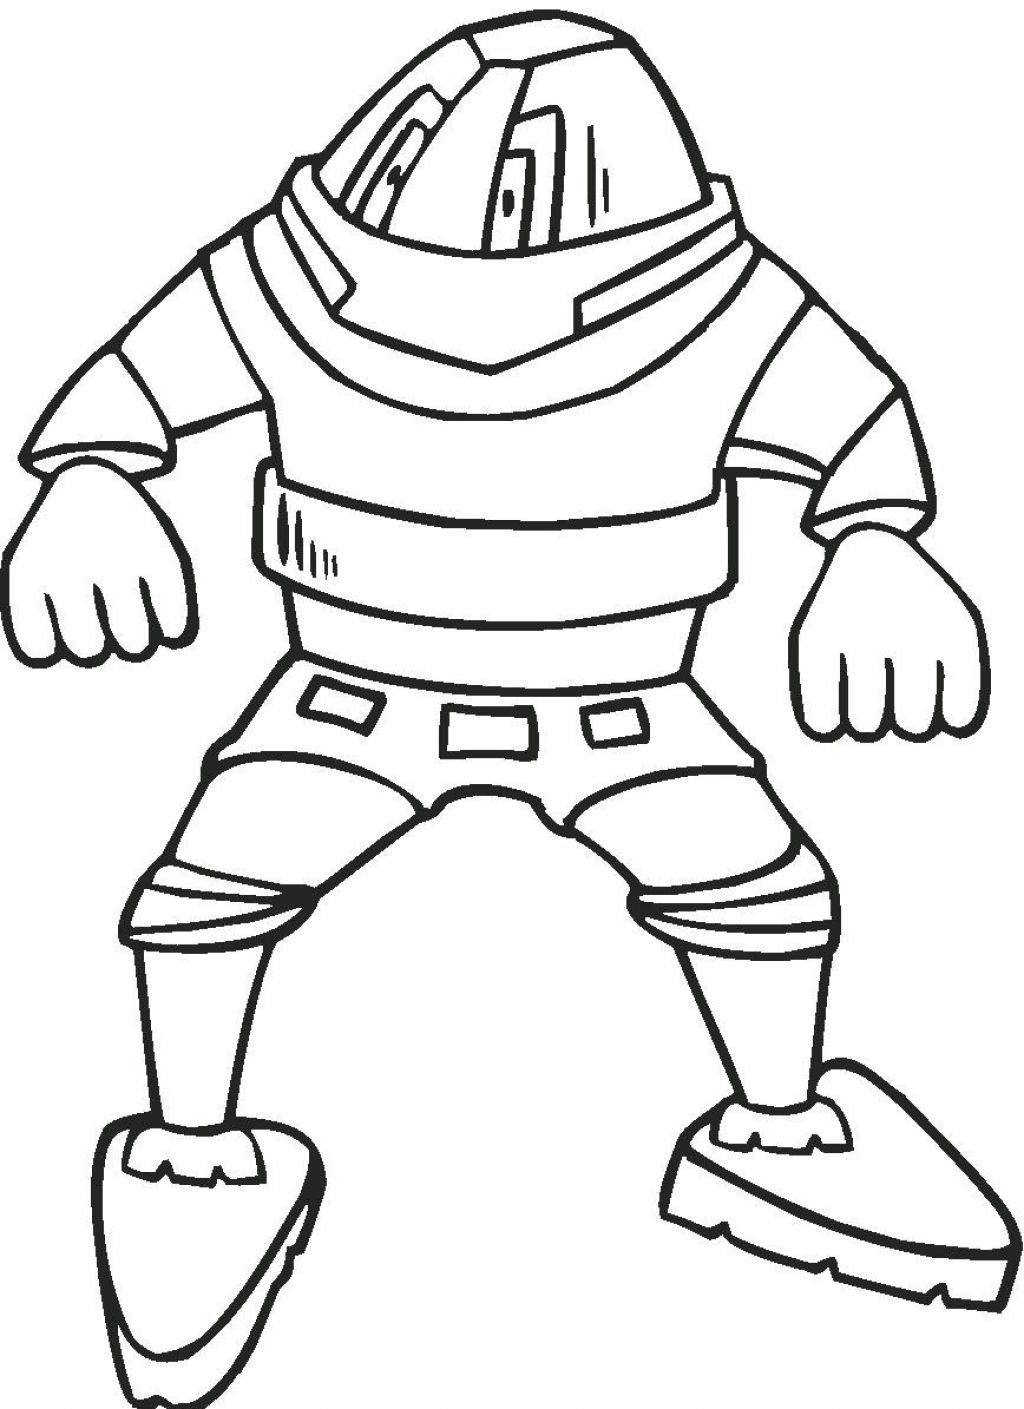 Coloring pages robots - Find This Pin And More On Robots Coloring Pages By Wandakelly0580